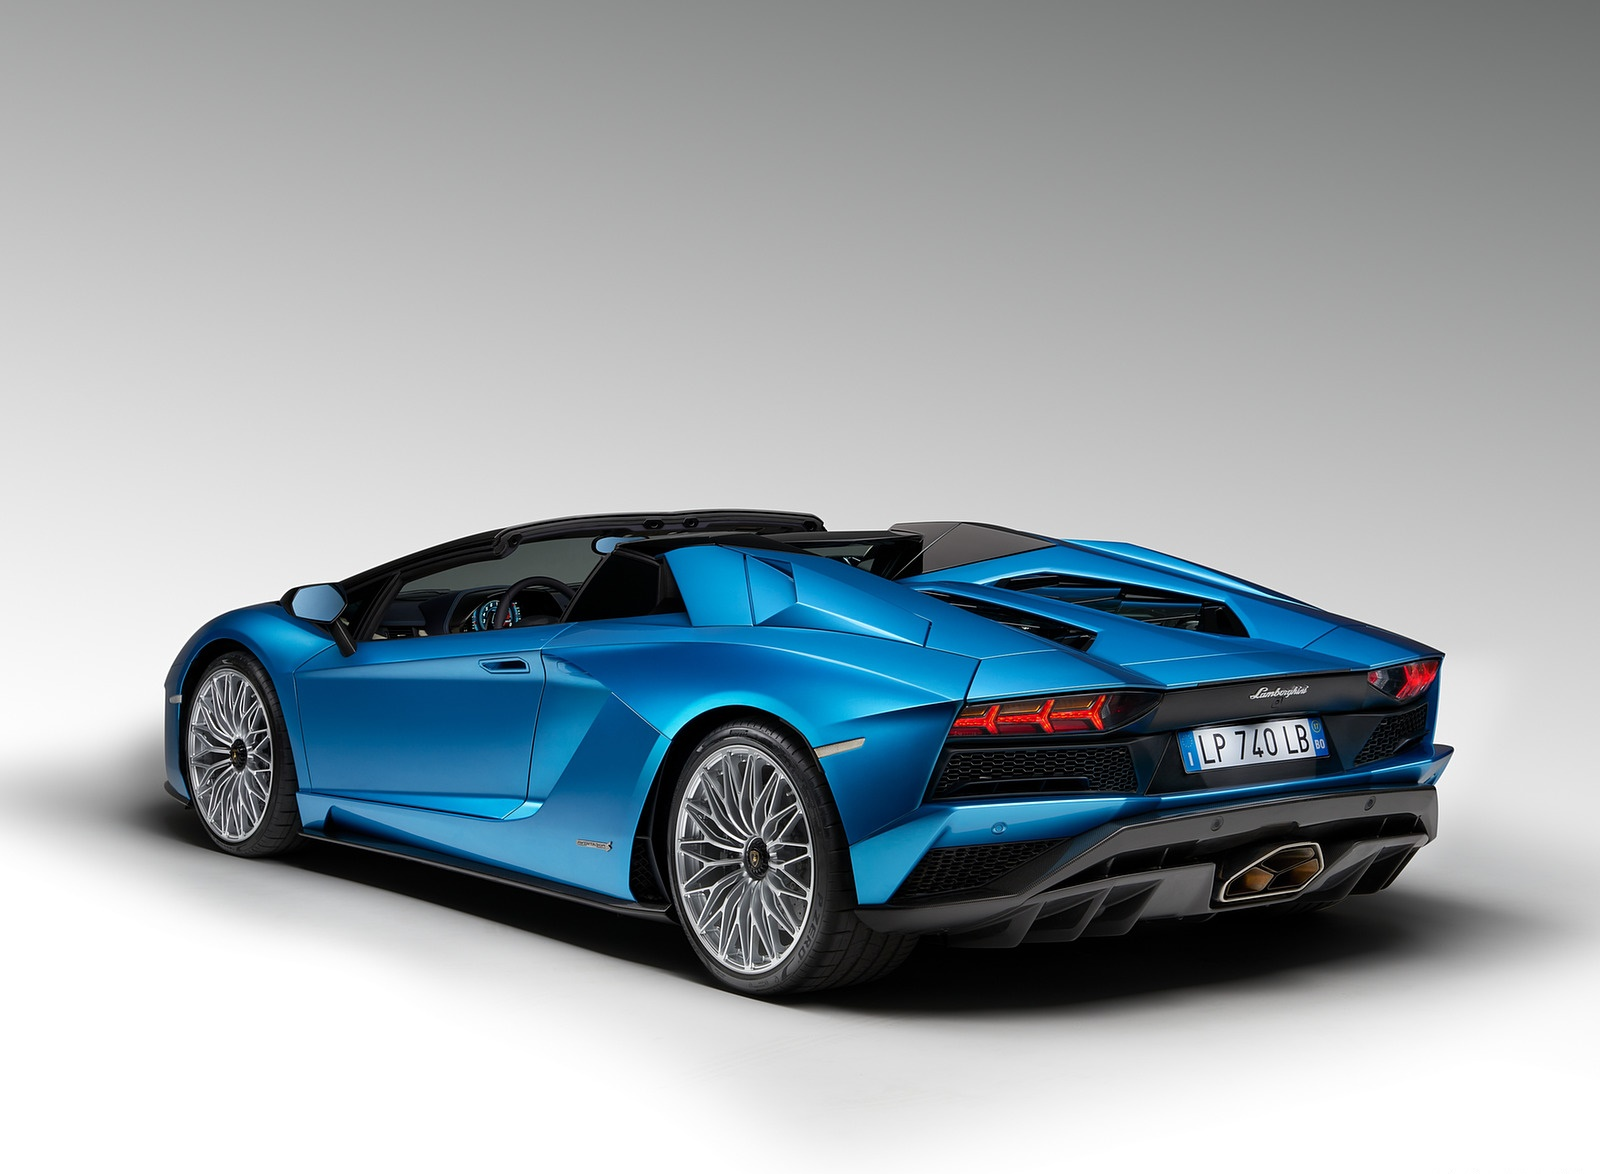 2018 Lamborghini Aventador S Roadster Rear Three Quarter Wallpaper